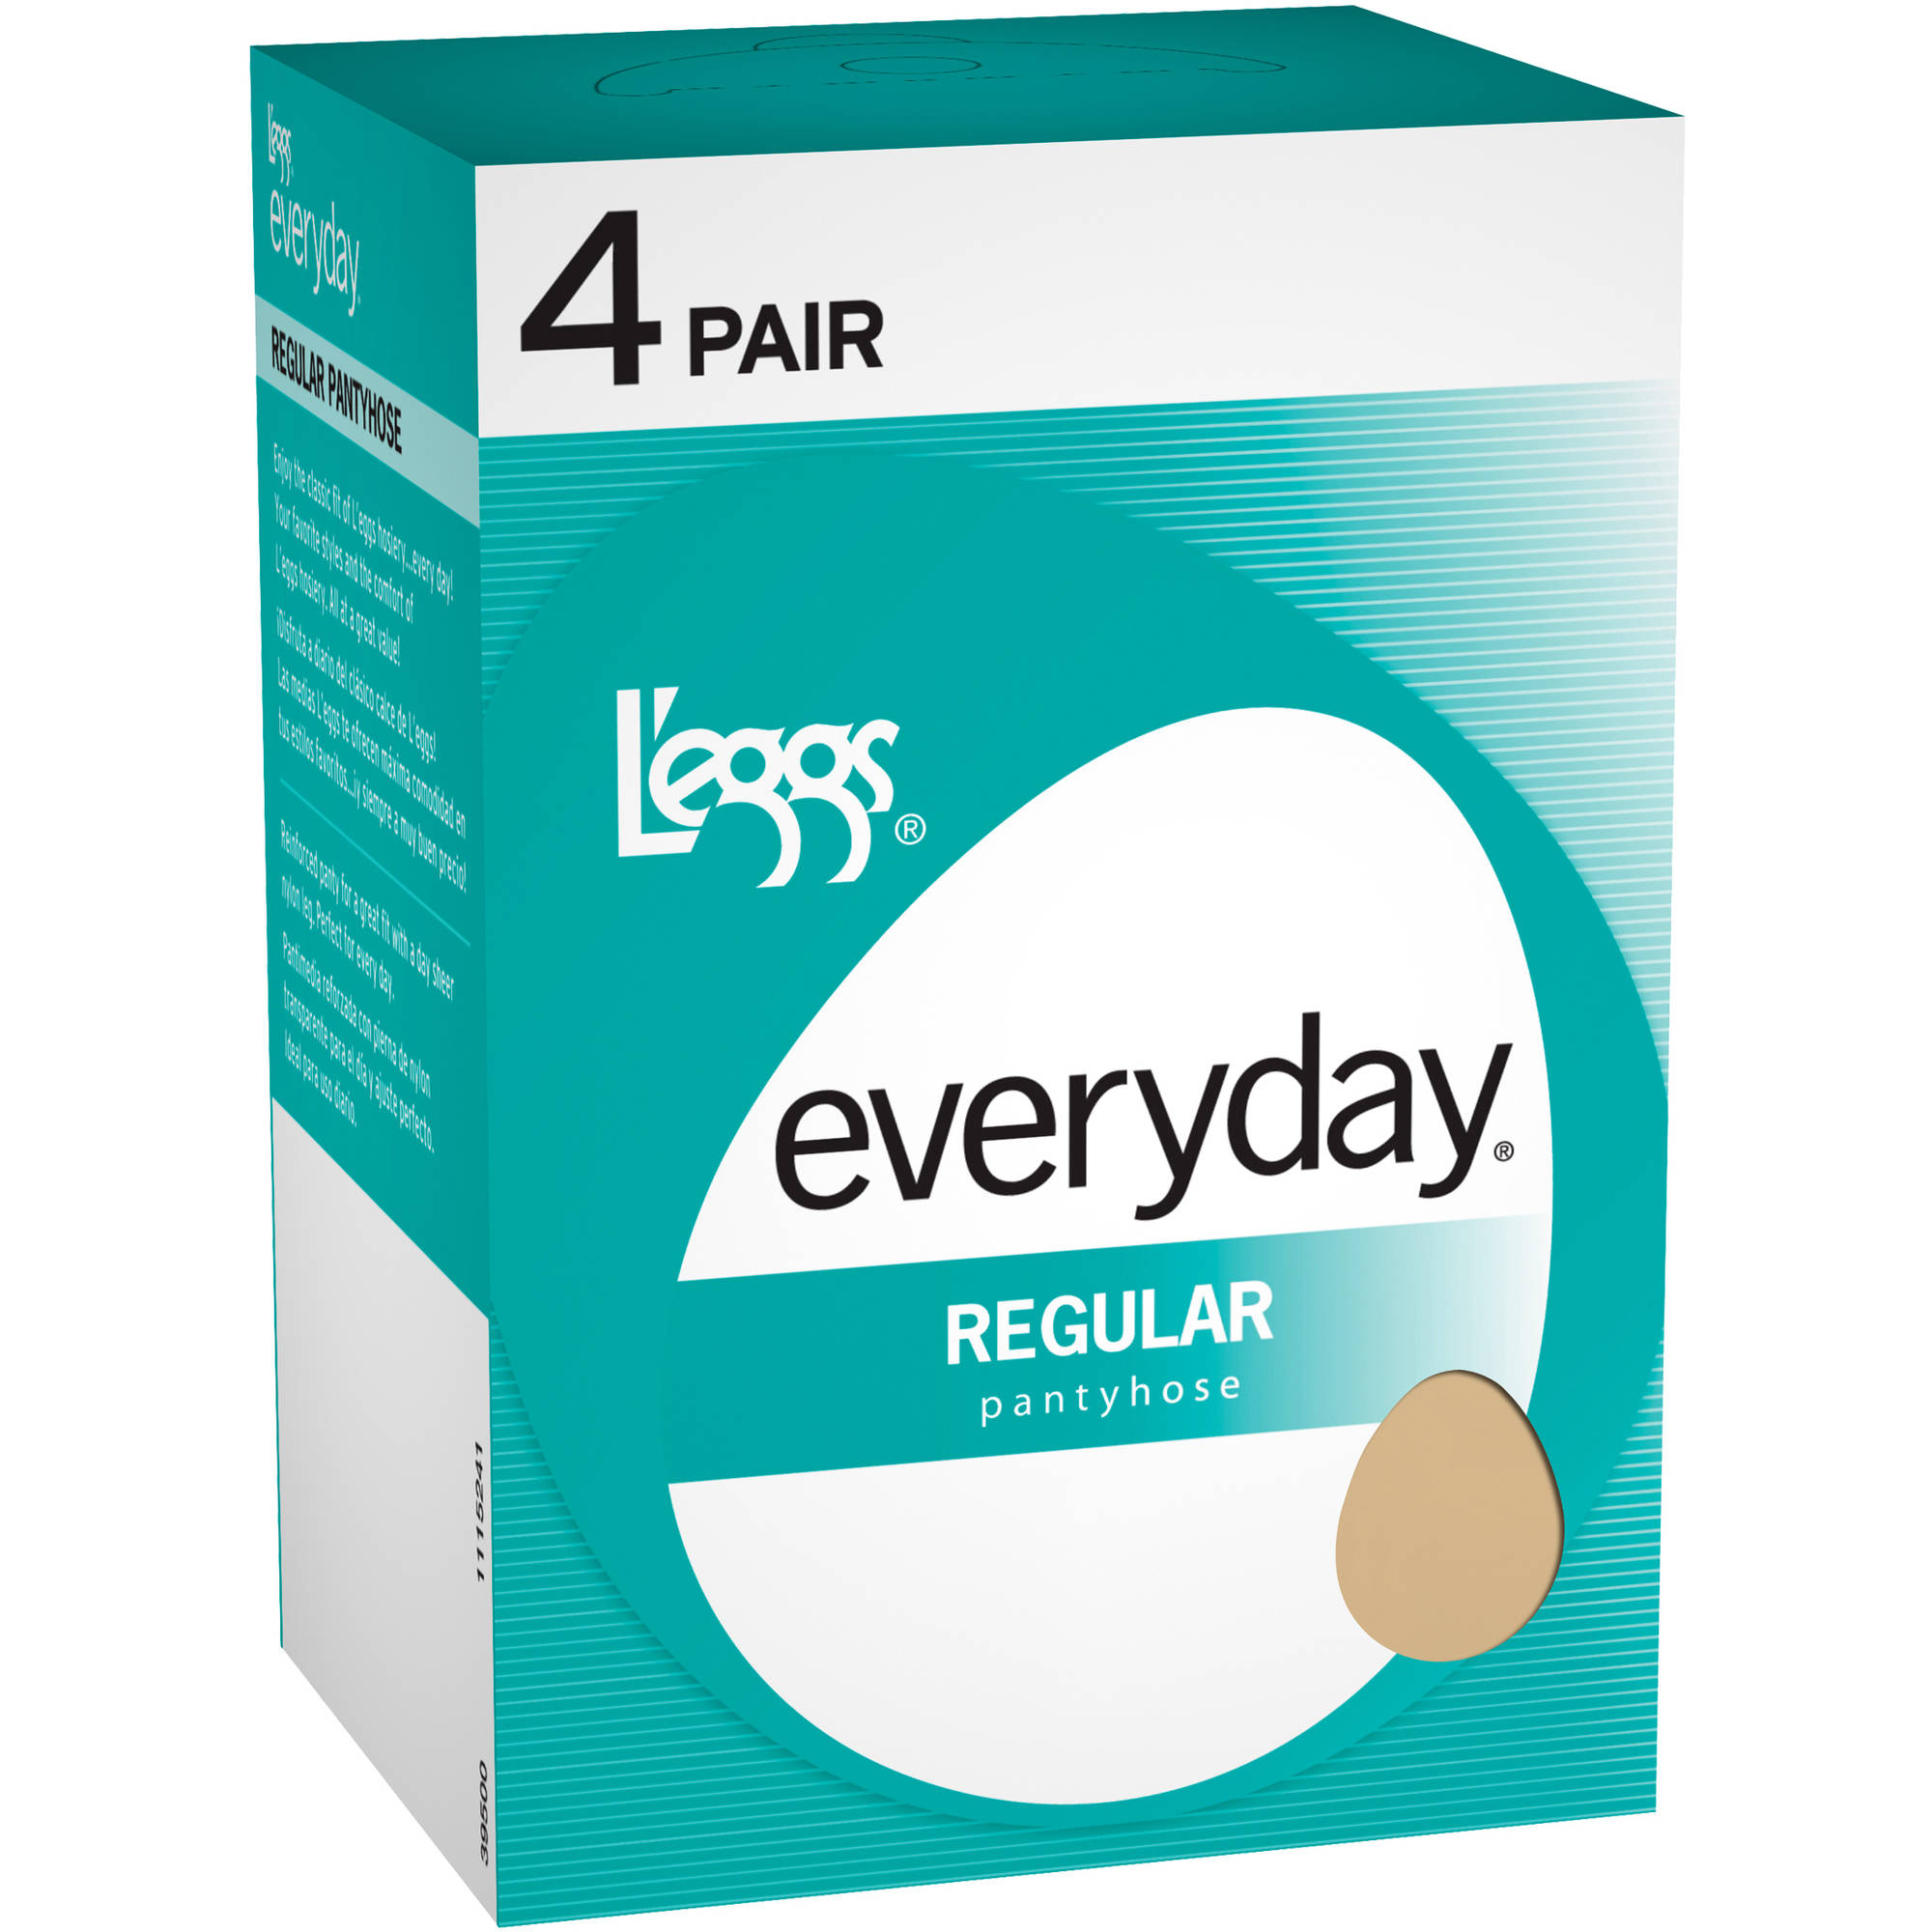 Everyday by L'eggs Hosiery